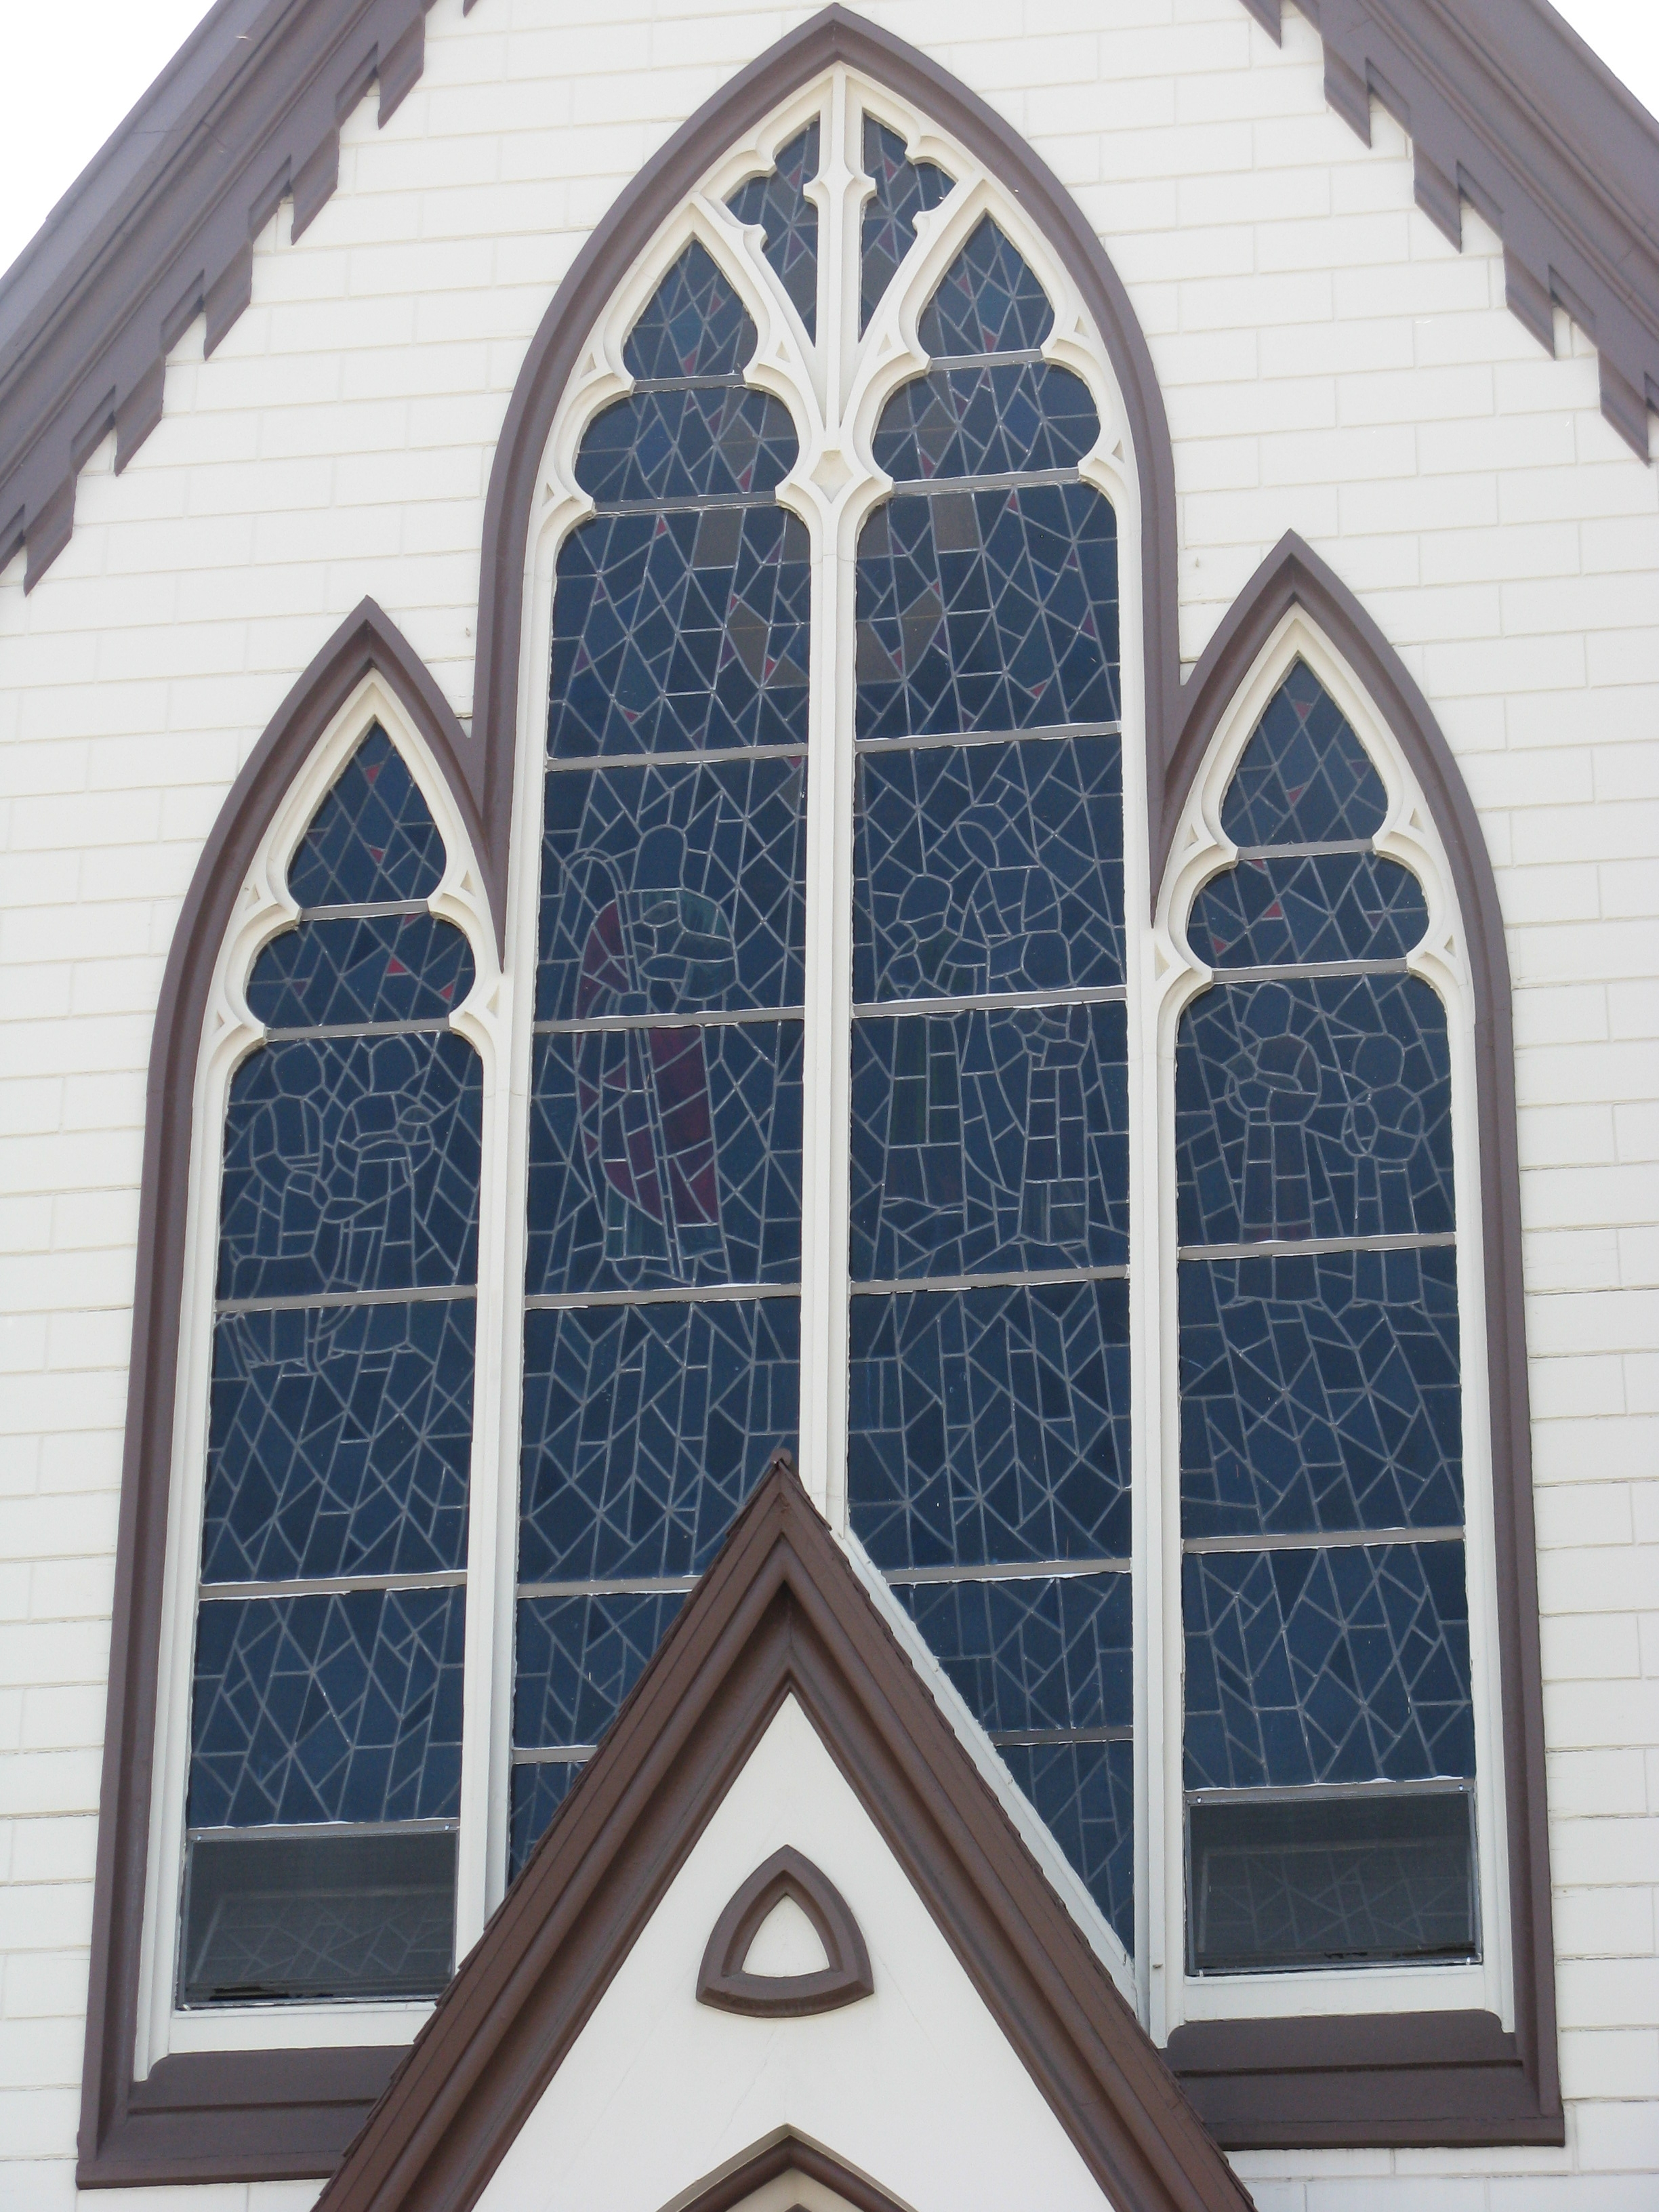 Stained Glass Window Over Entrance Doors